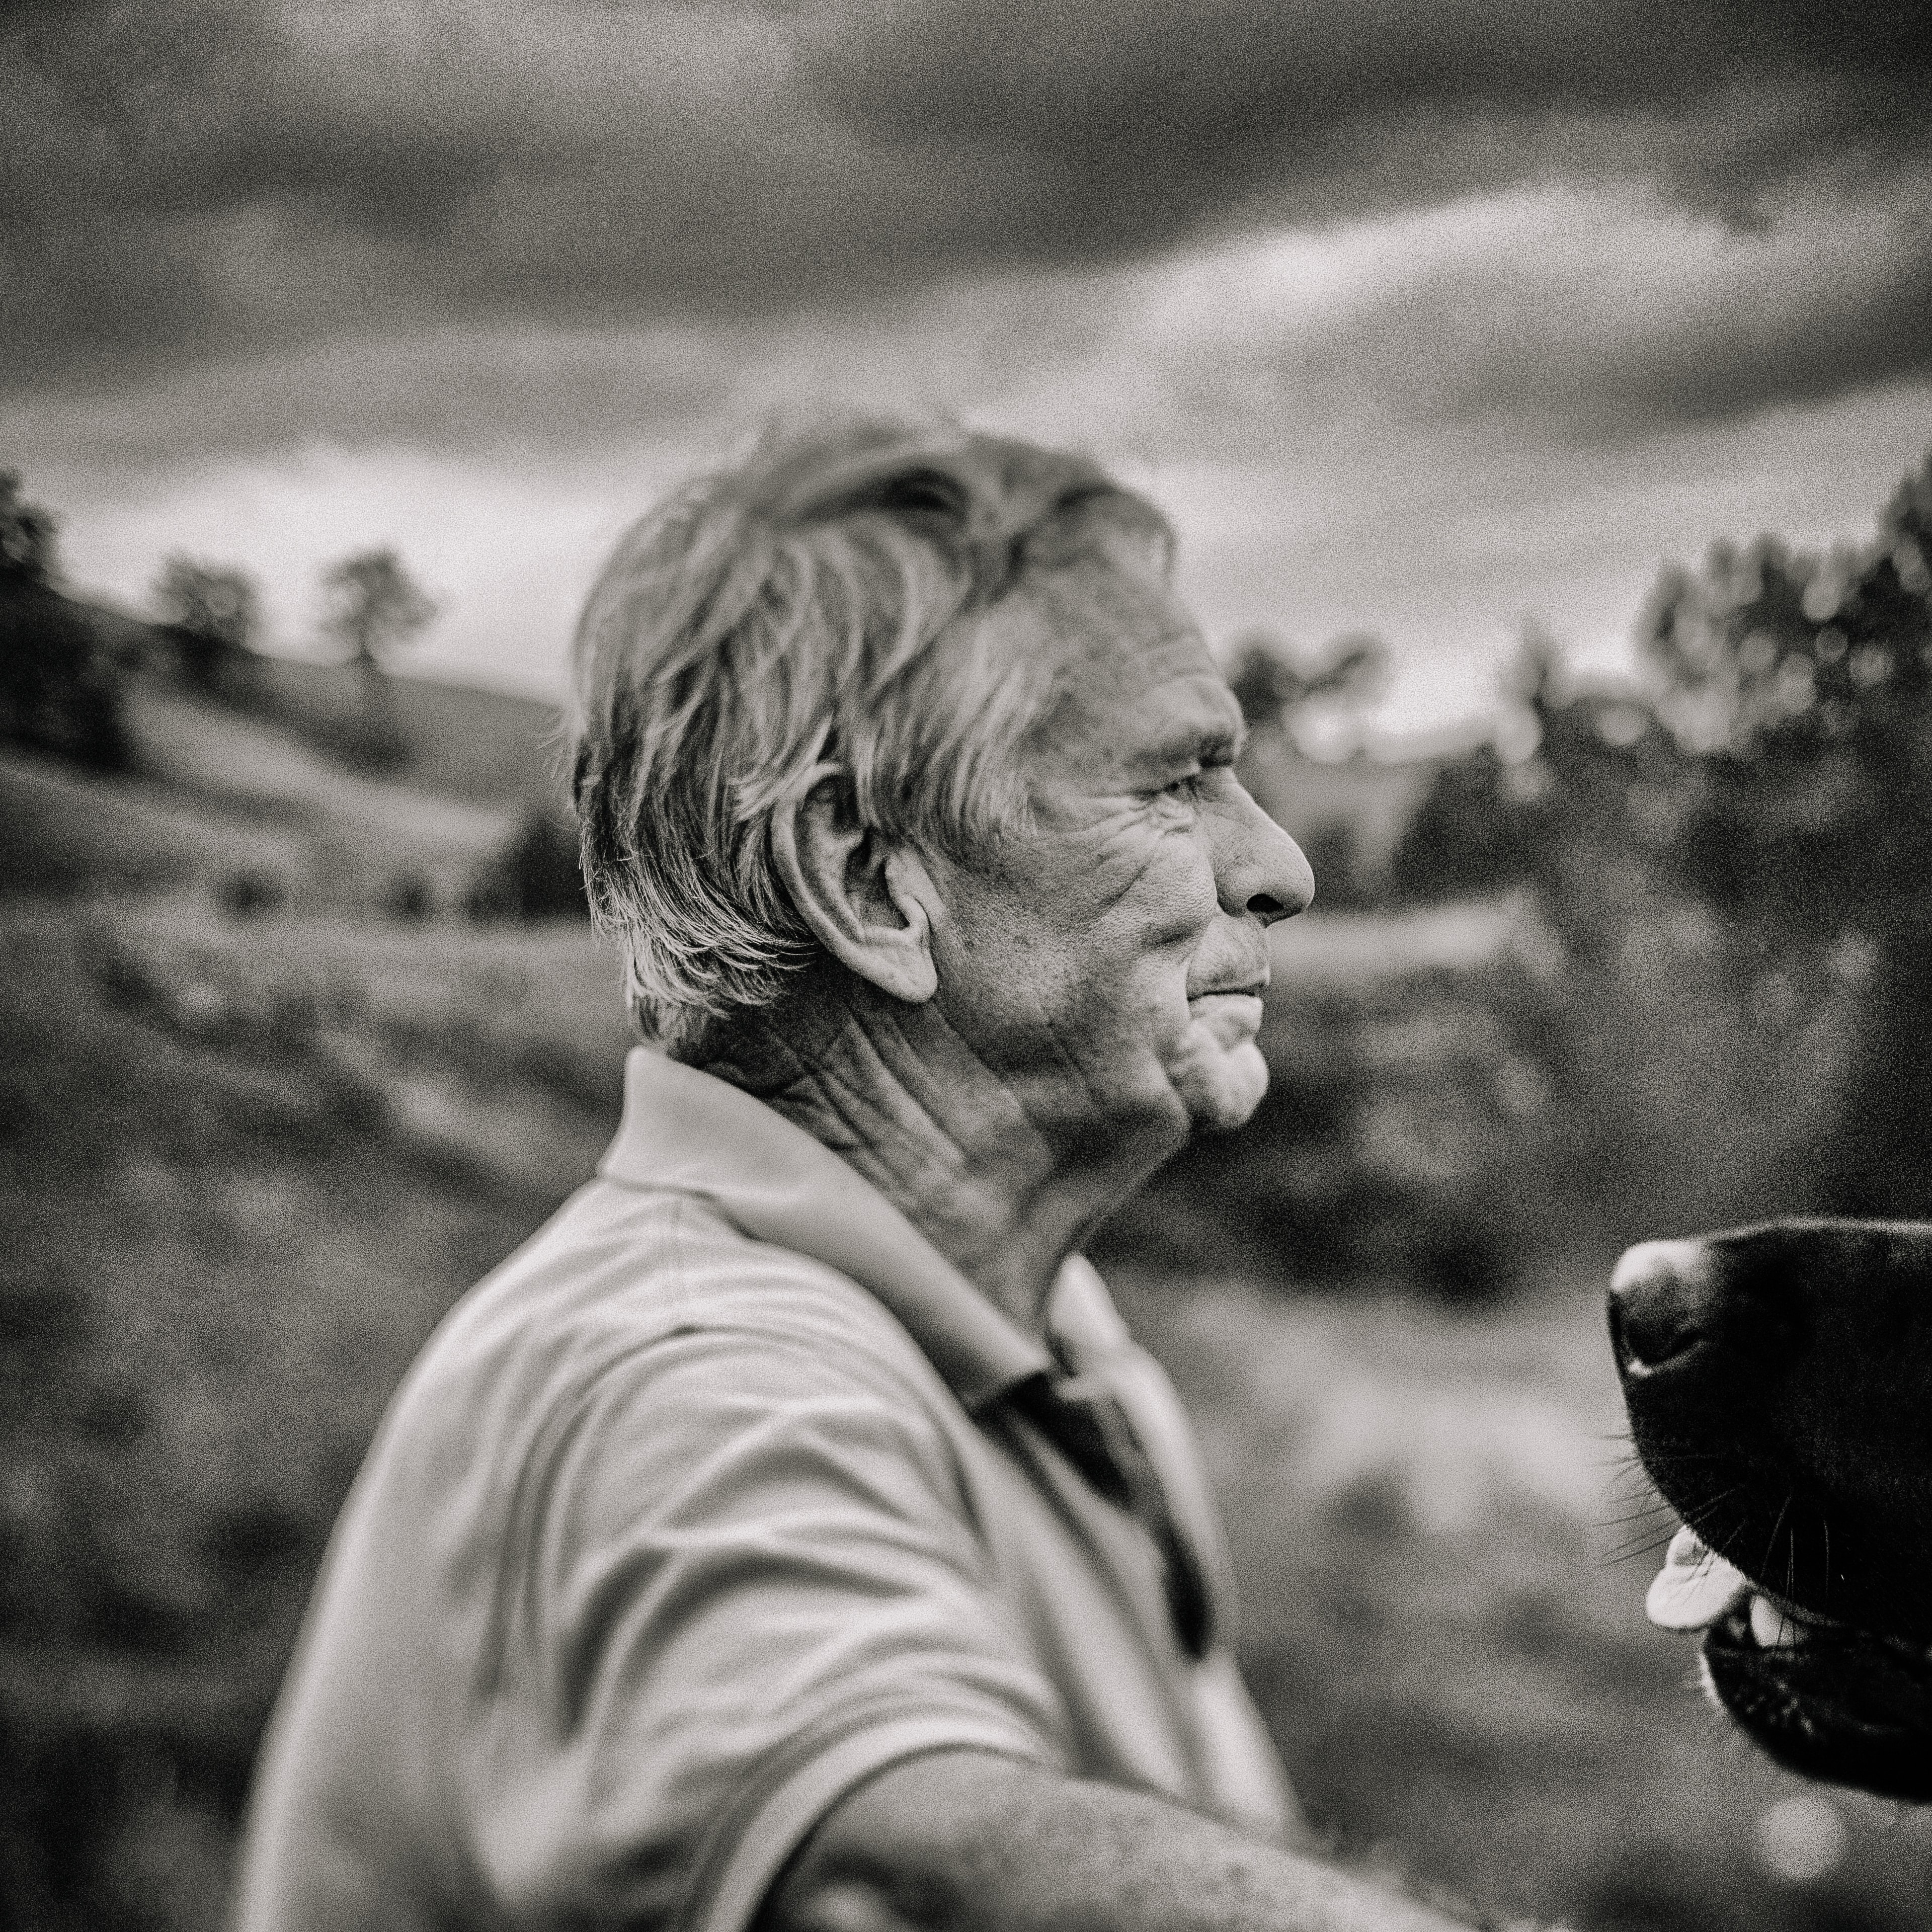 Old man looking out into the distance of a field in black and white.